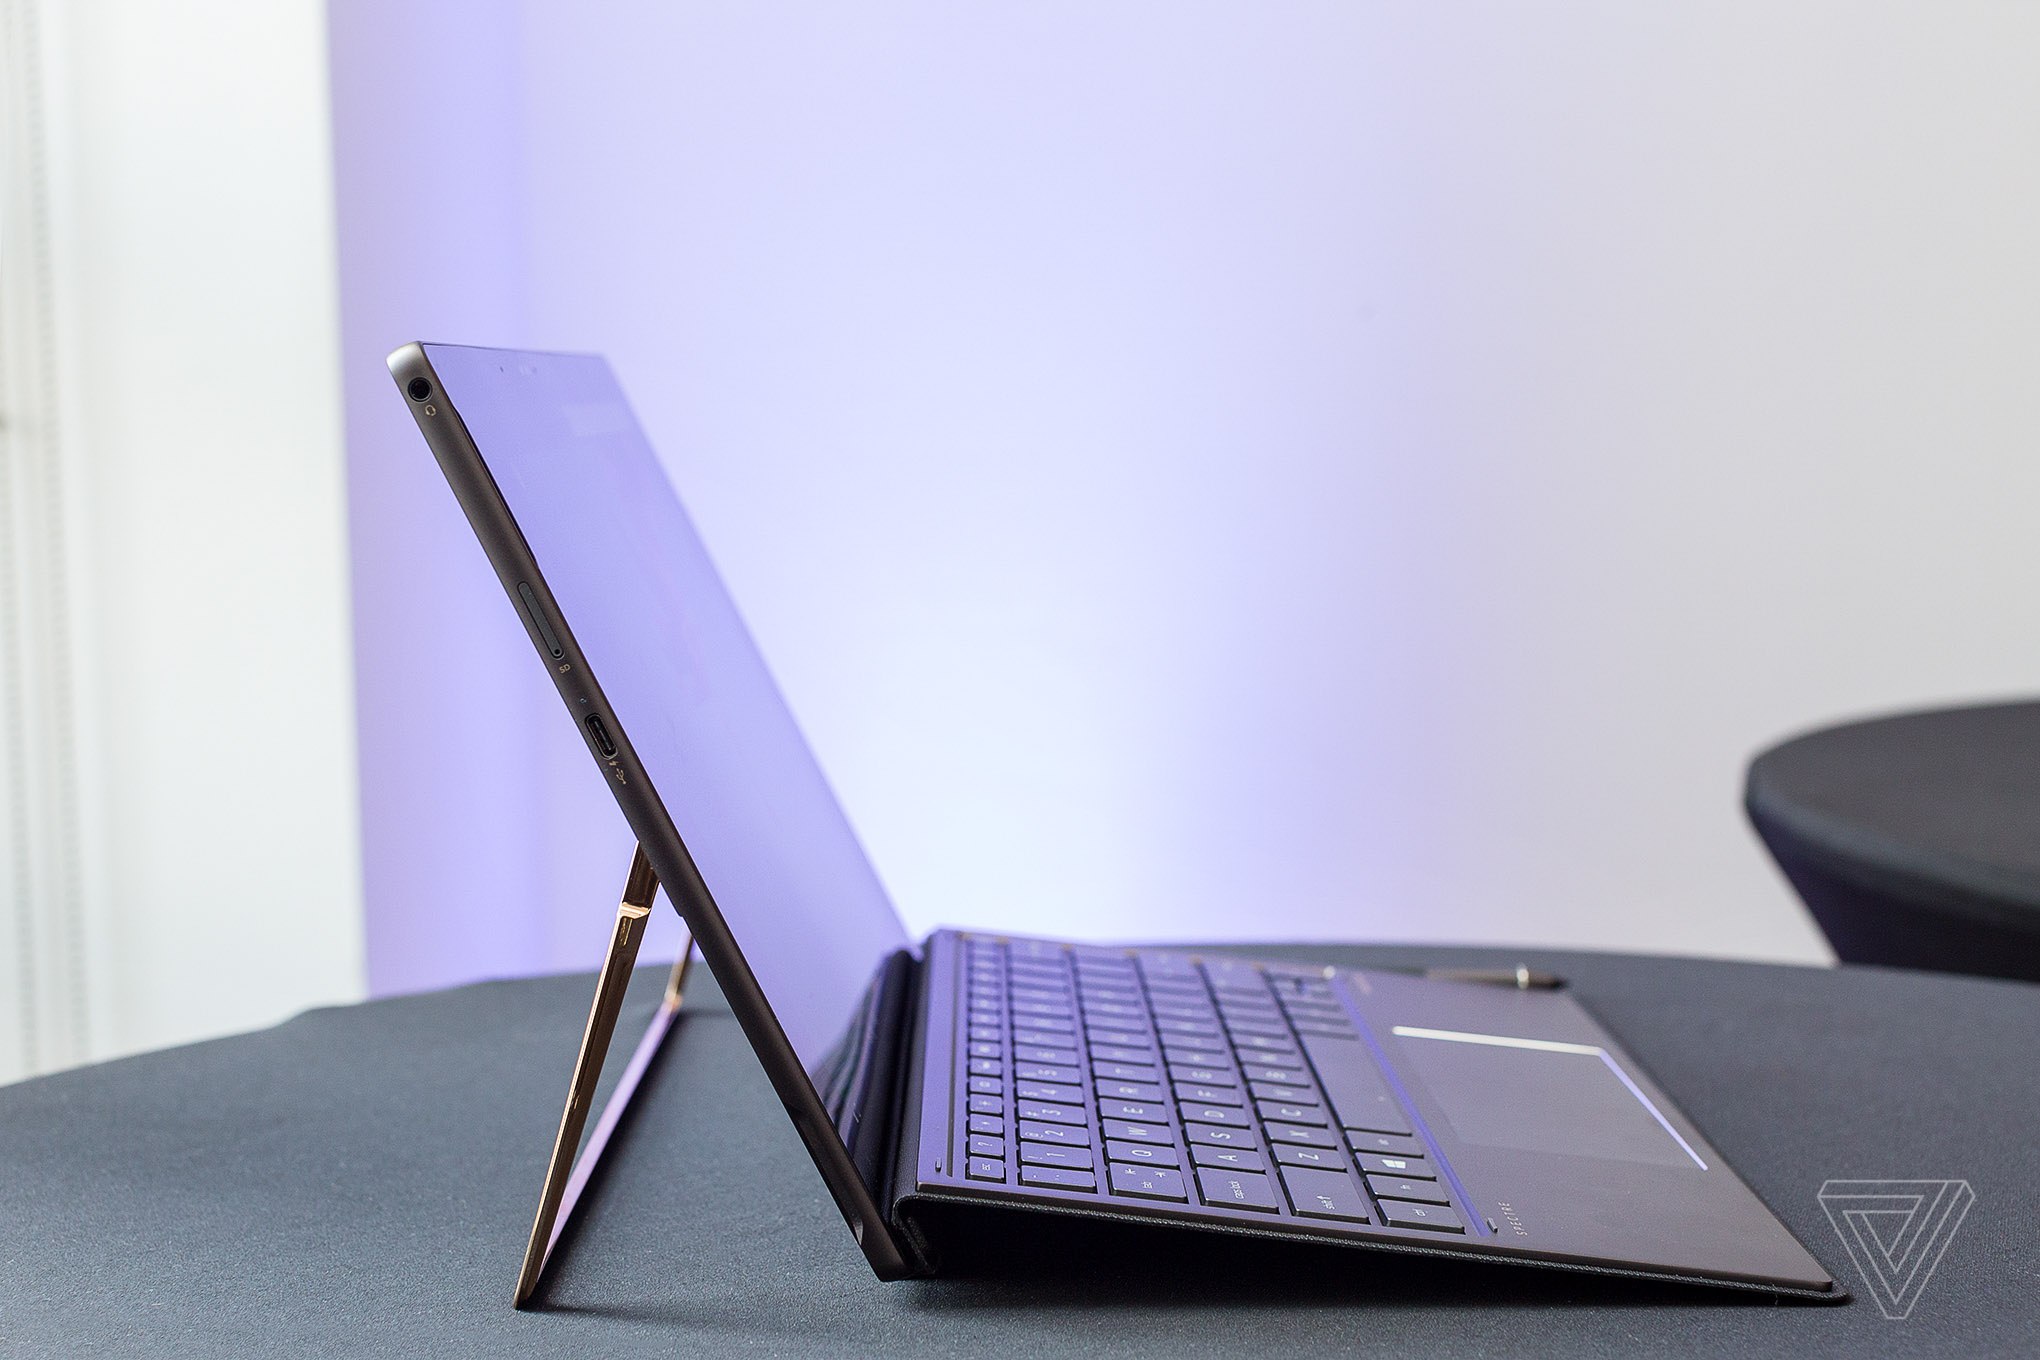 HP debuts new Spectre x2 alongside updated high-end laptops